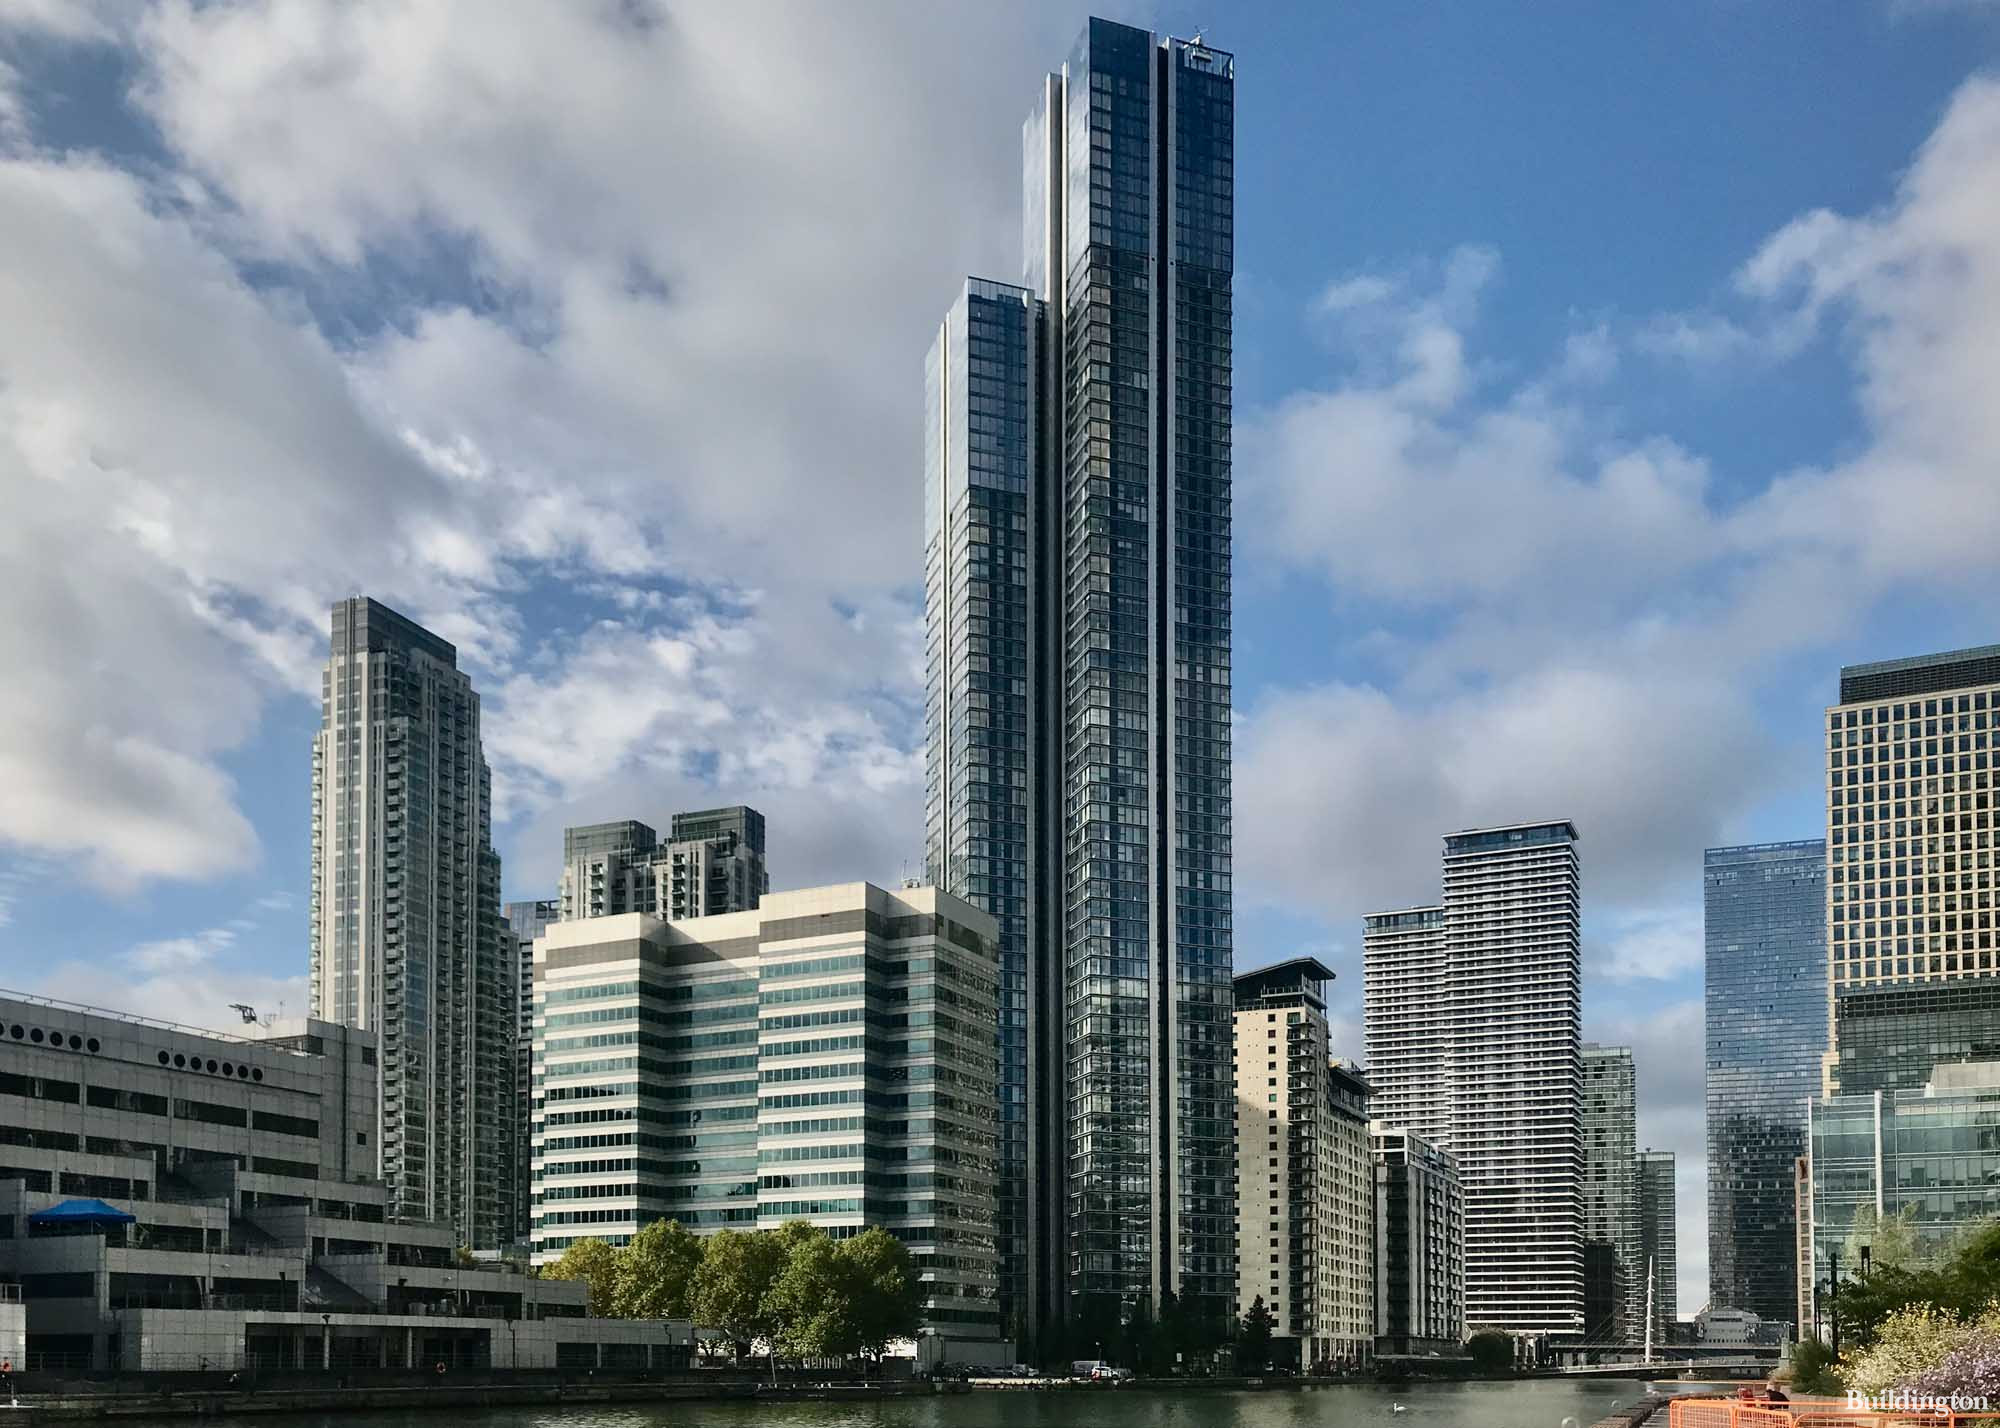 View to South Quay Plaza from Wood Wharf in London E14.